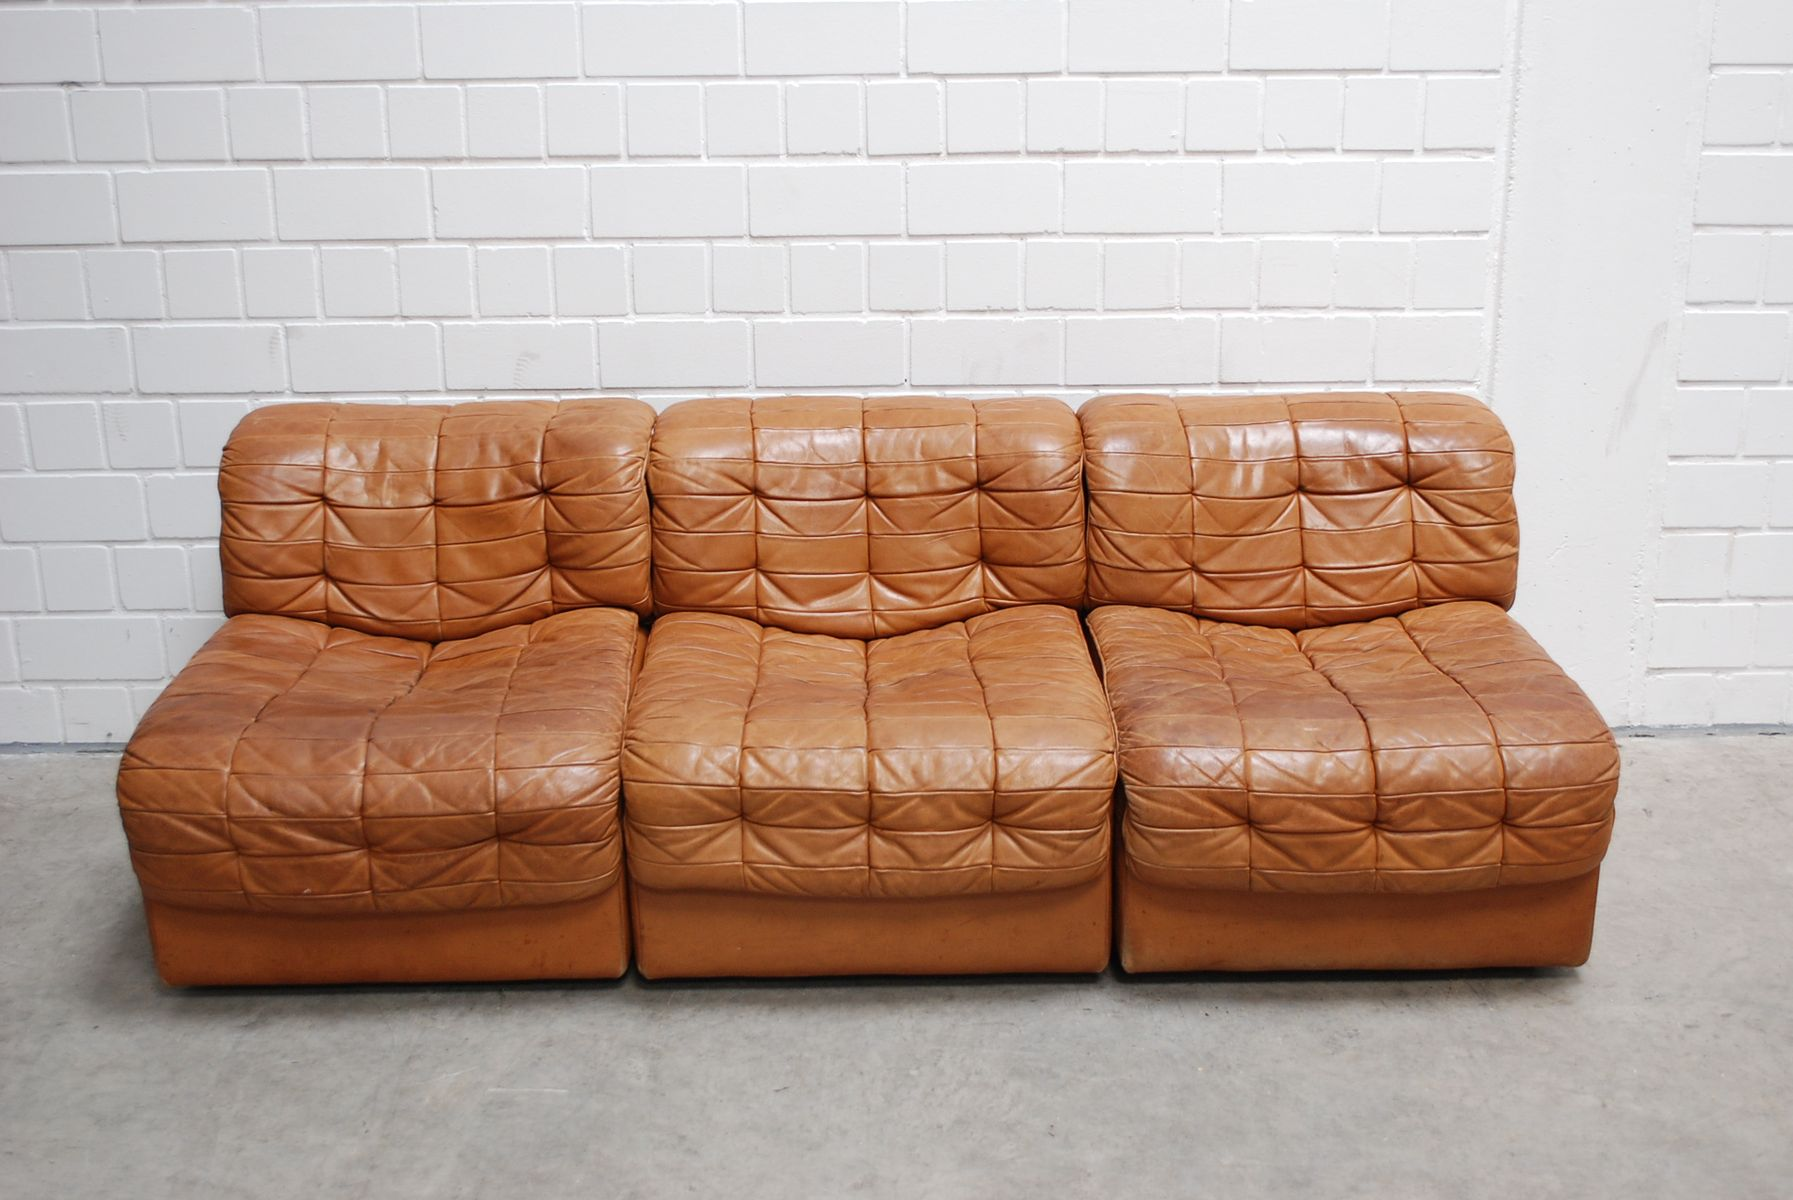 Swiss Modular DS 11 Cognac Leather Sofa from De Sede 1985 for